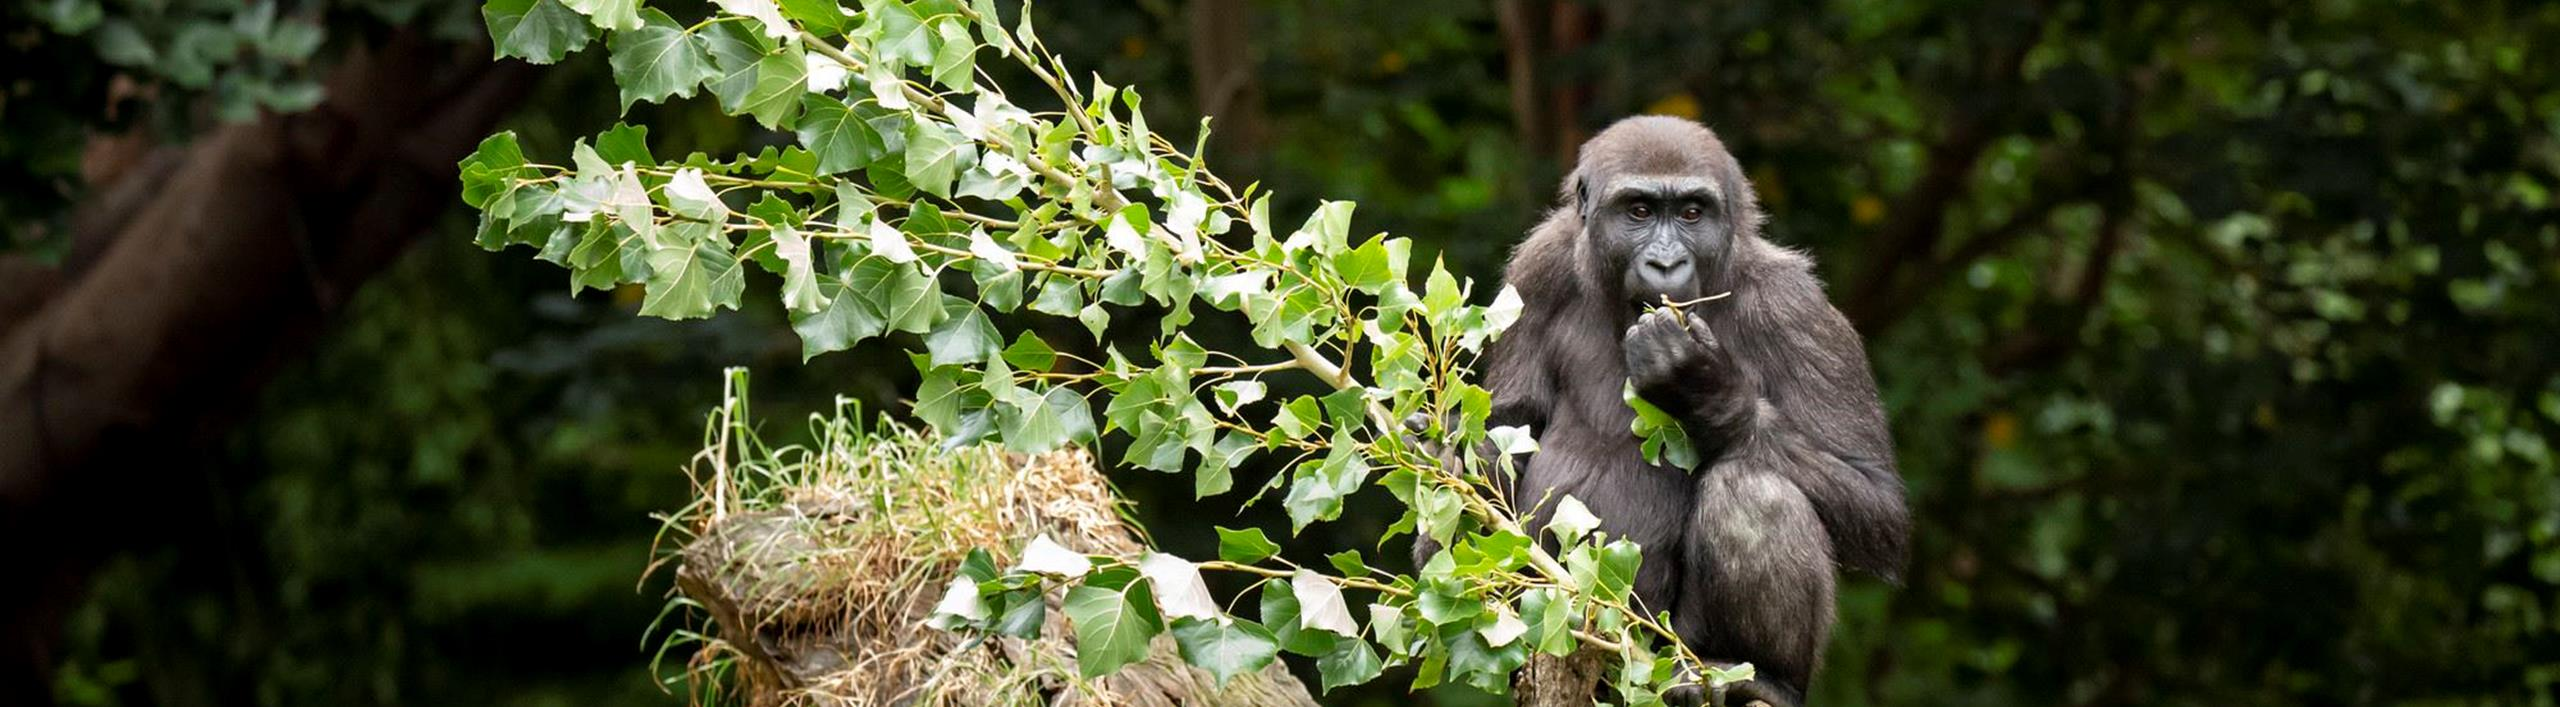 Kanzi the gorilla eating a large branch of leaves on her 4th birthday.